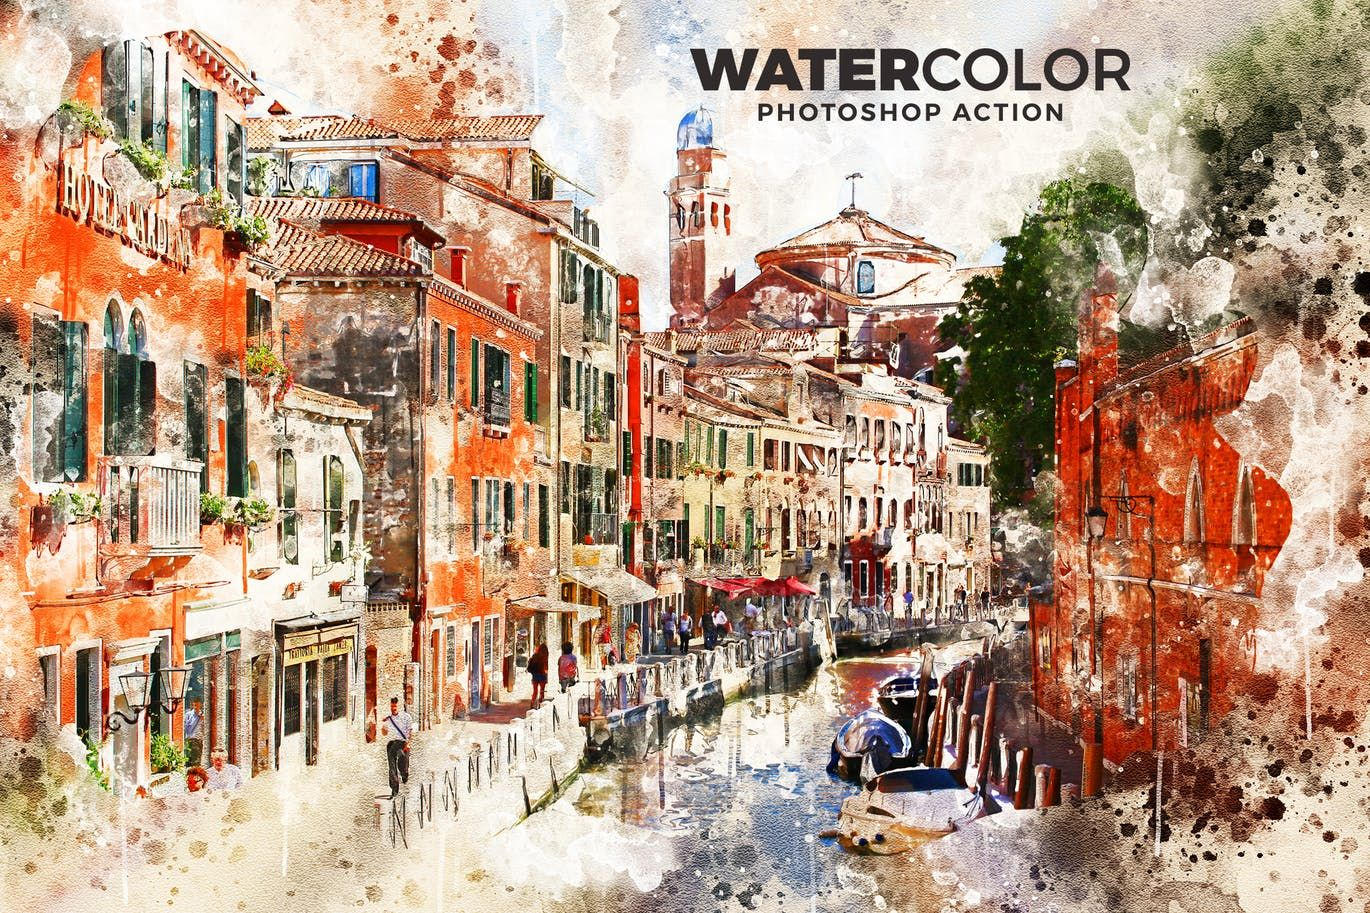 Watercolor Action Is A Photoshop Action That You Can Use It To